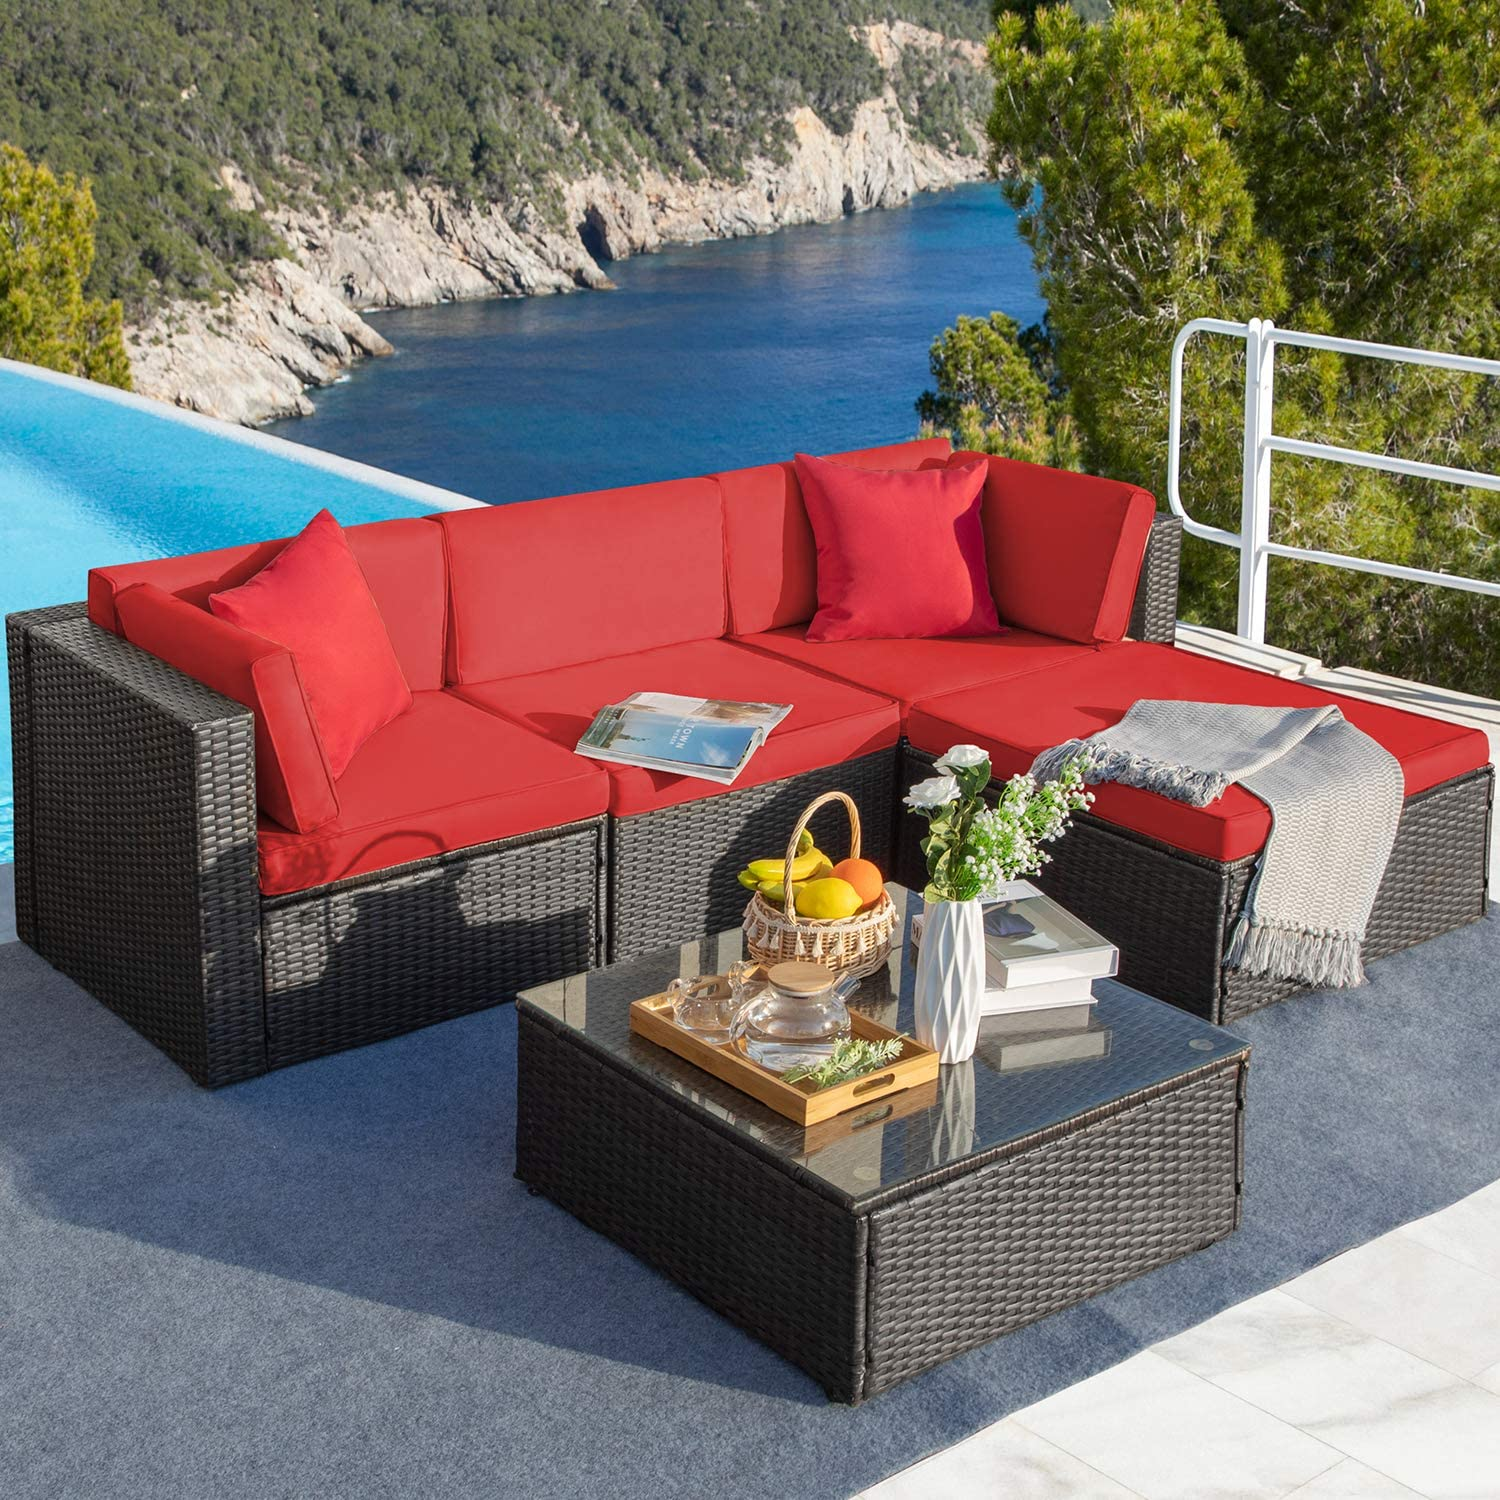 Greesum GS-5PCS8-RD 5 Pieces Patio Sectional Furniture Set, Brown and Red